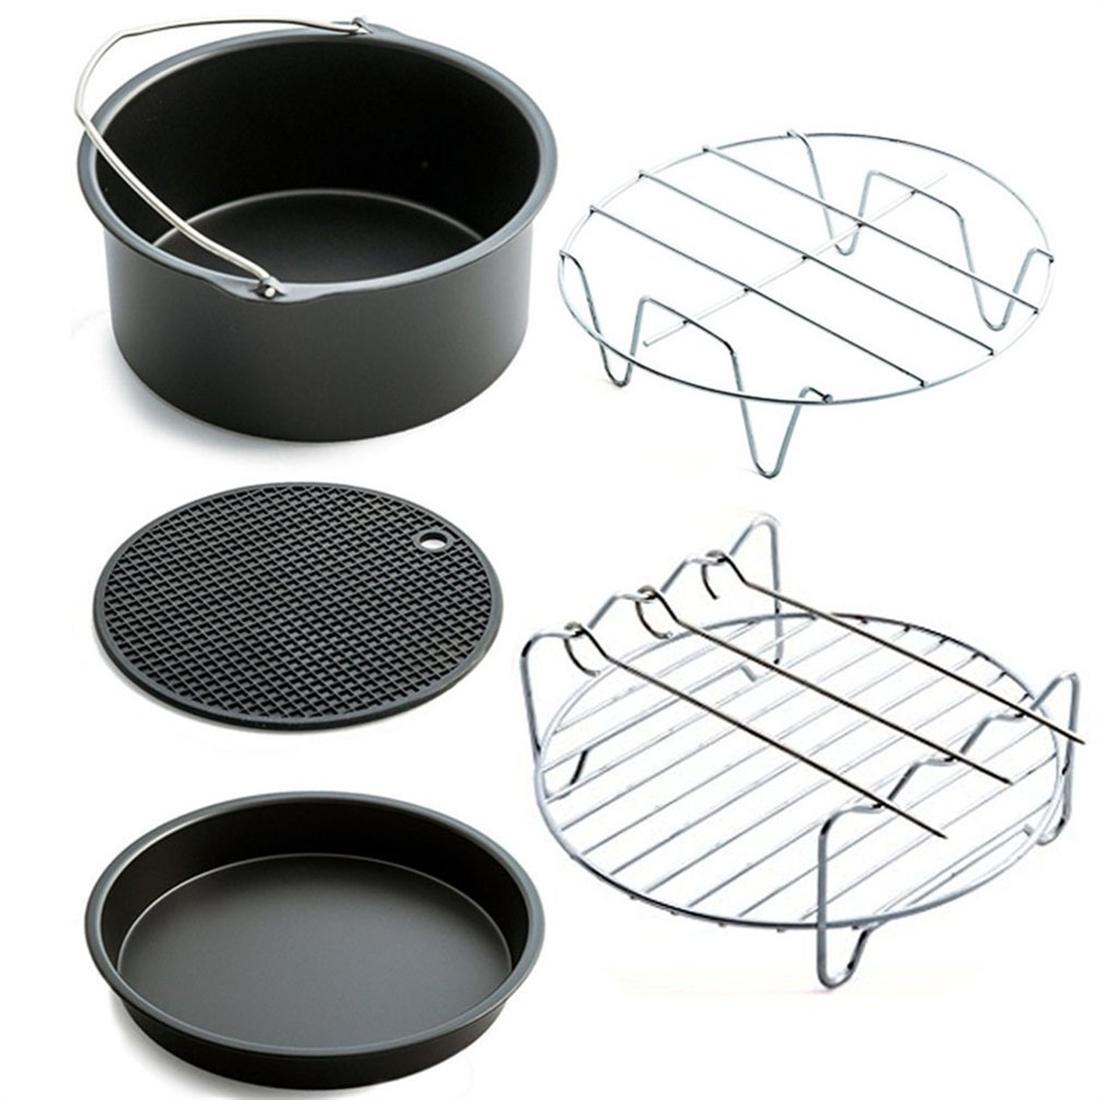 5Pcs 6 Inch Air Fryer Frying Cage Dish Baking Pan Rack Pizza Tray Pot Accessories Bakeware Sets Air Frying Pan Accessories